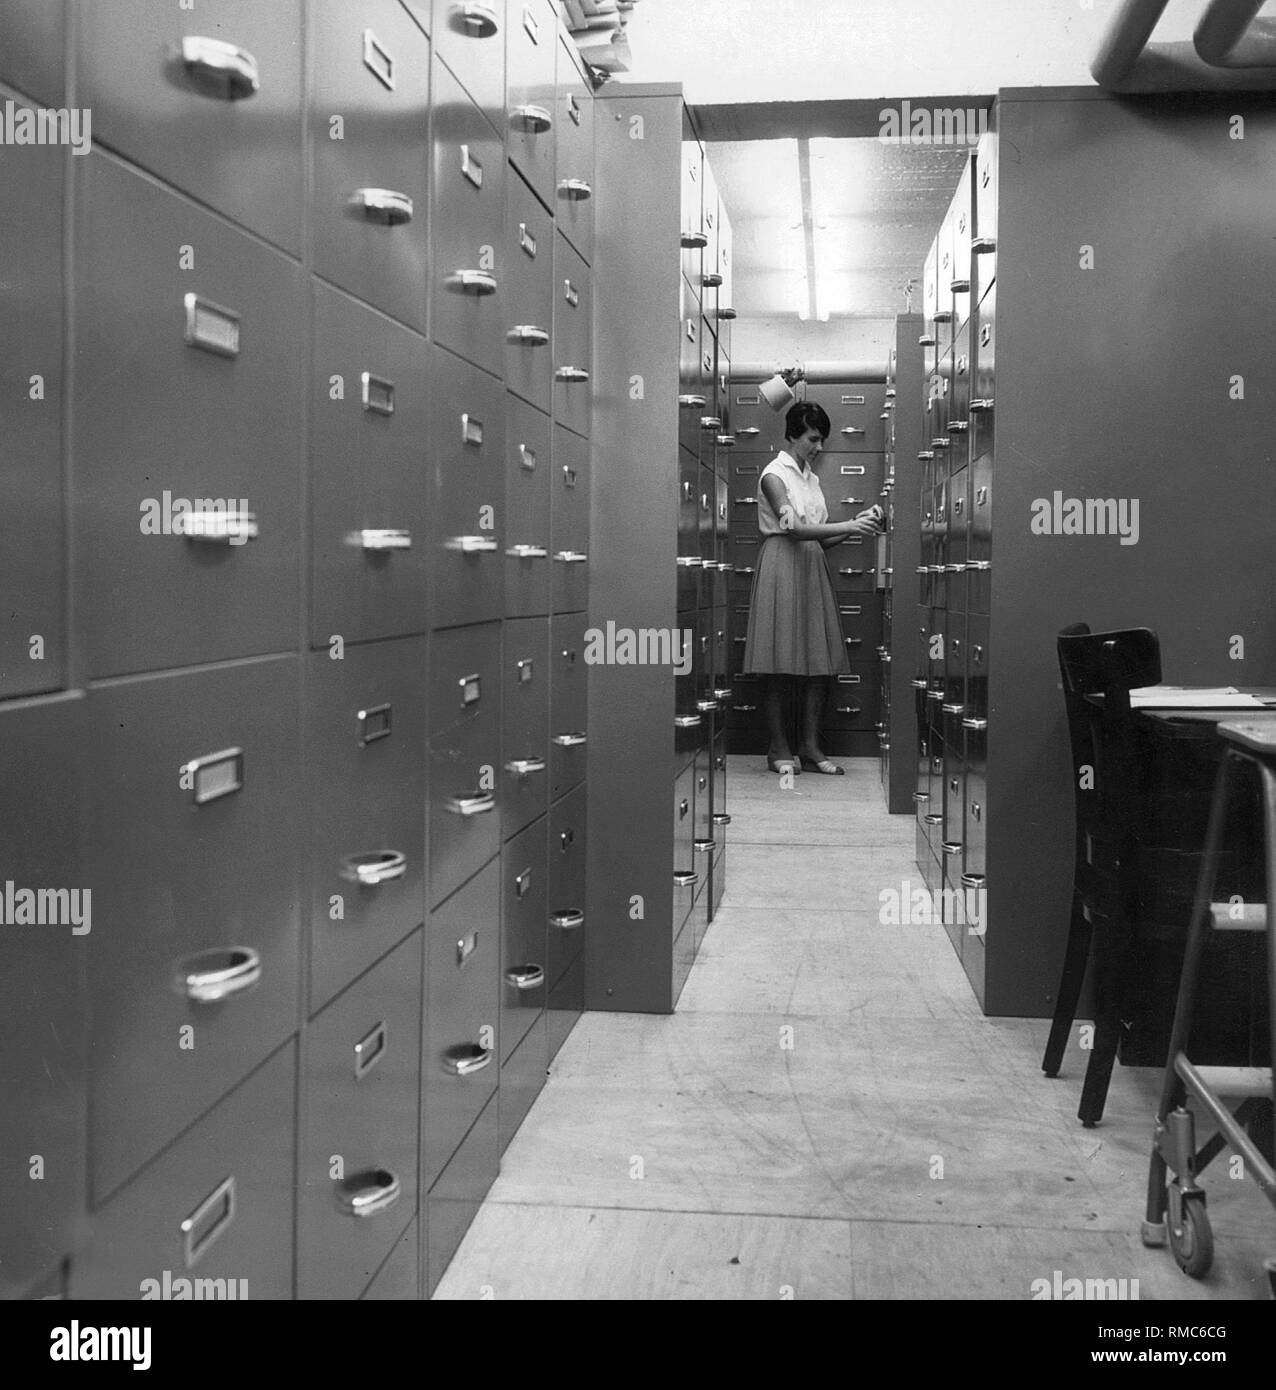 An employee of the photo archive of Sueddeutsche Verlag, Mrs. Ernst, during research (undated photo). - Stock Image